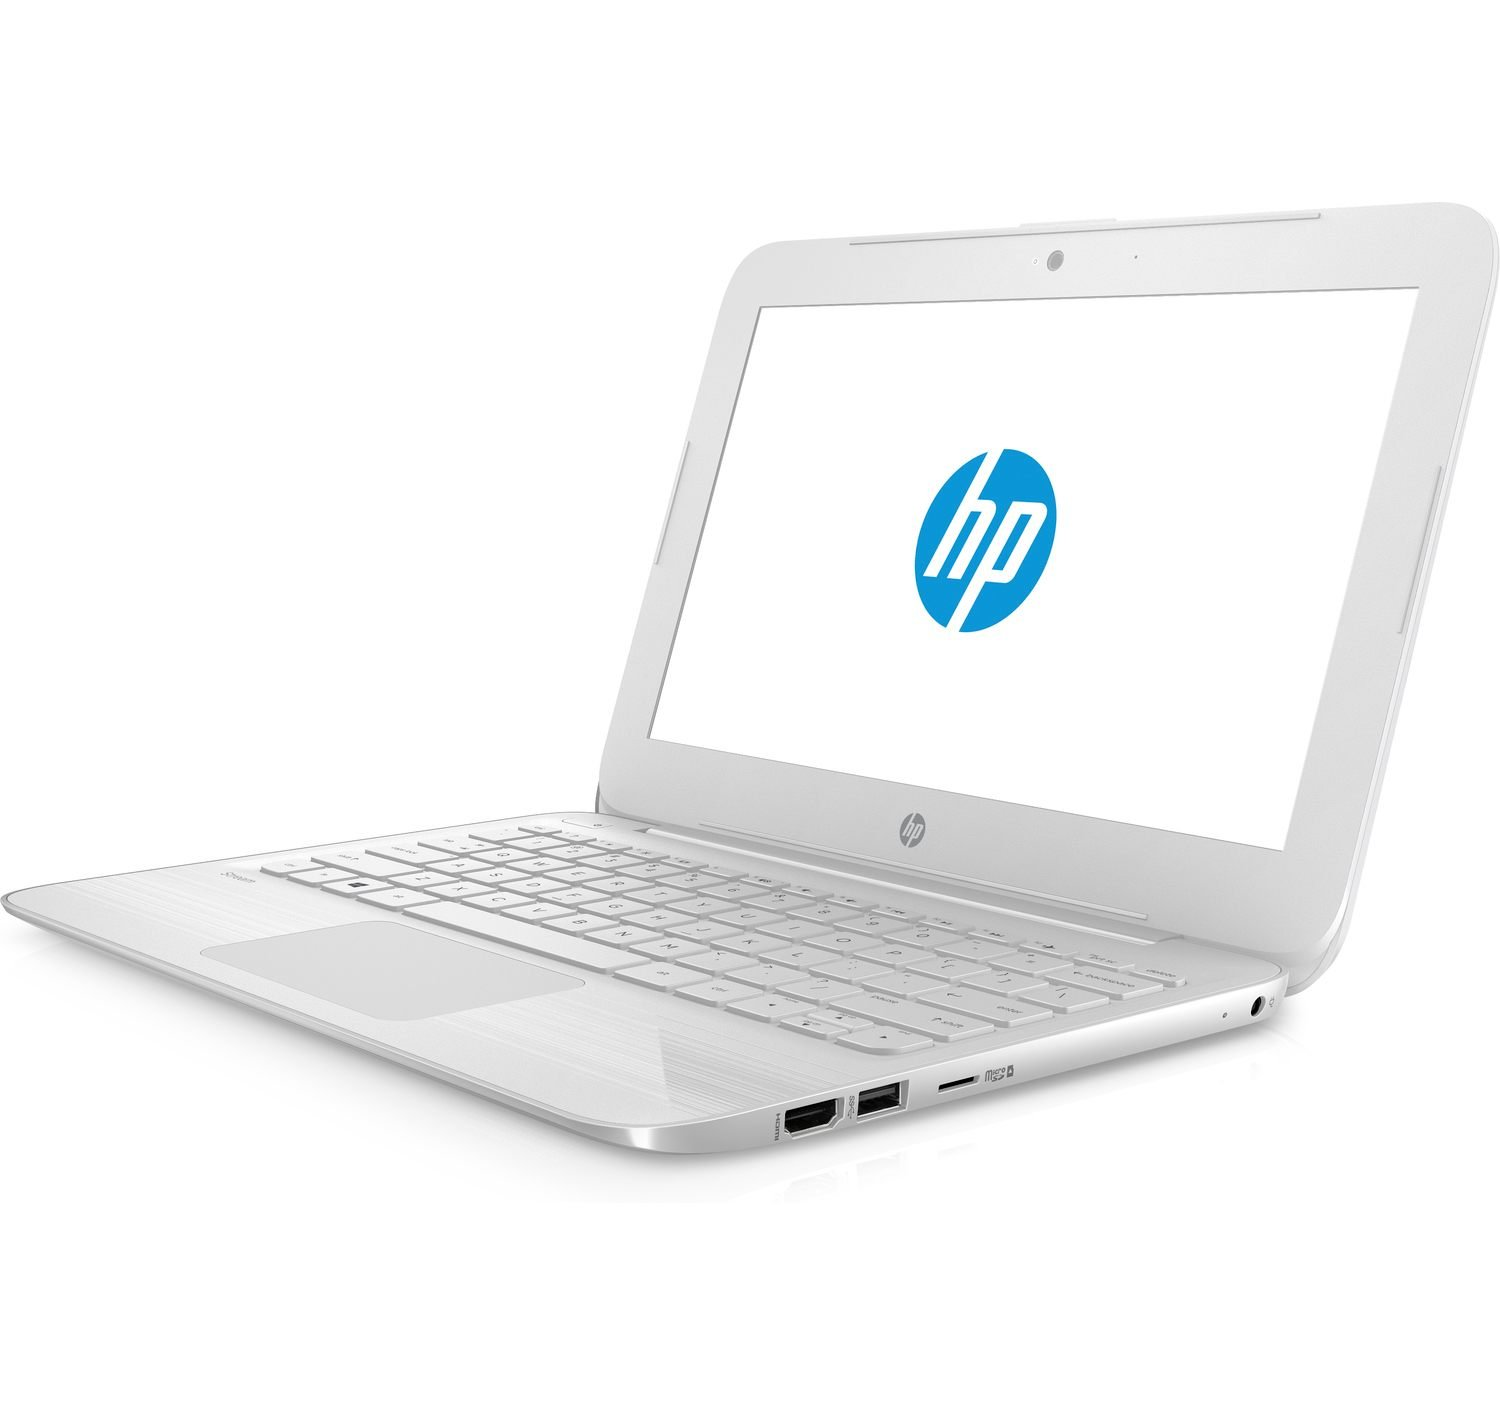 Top 10 Best HP Laptop